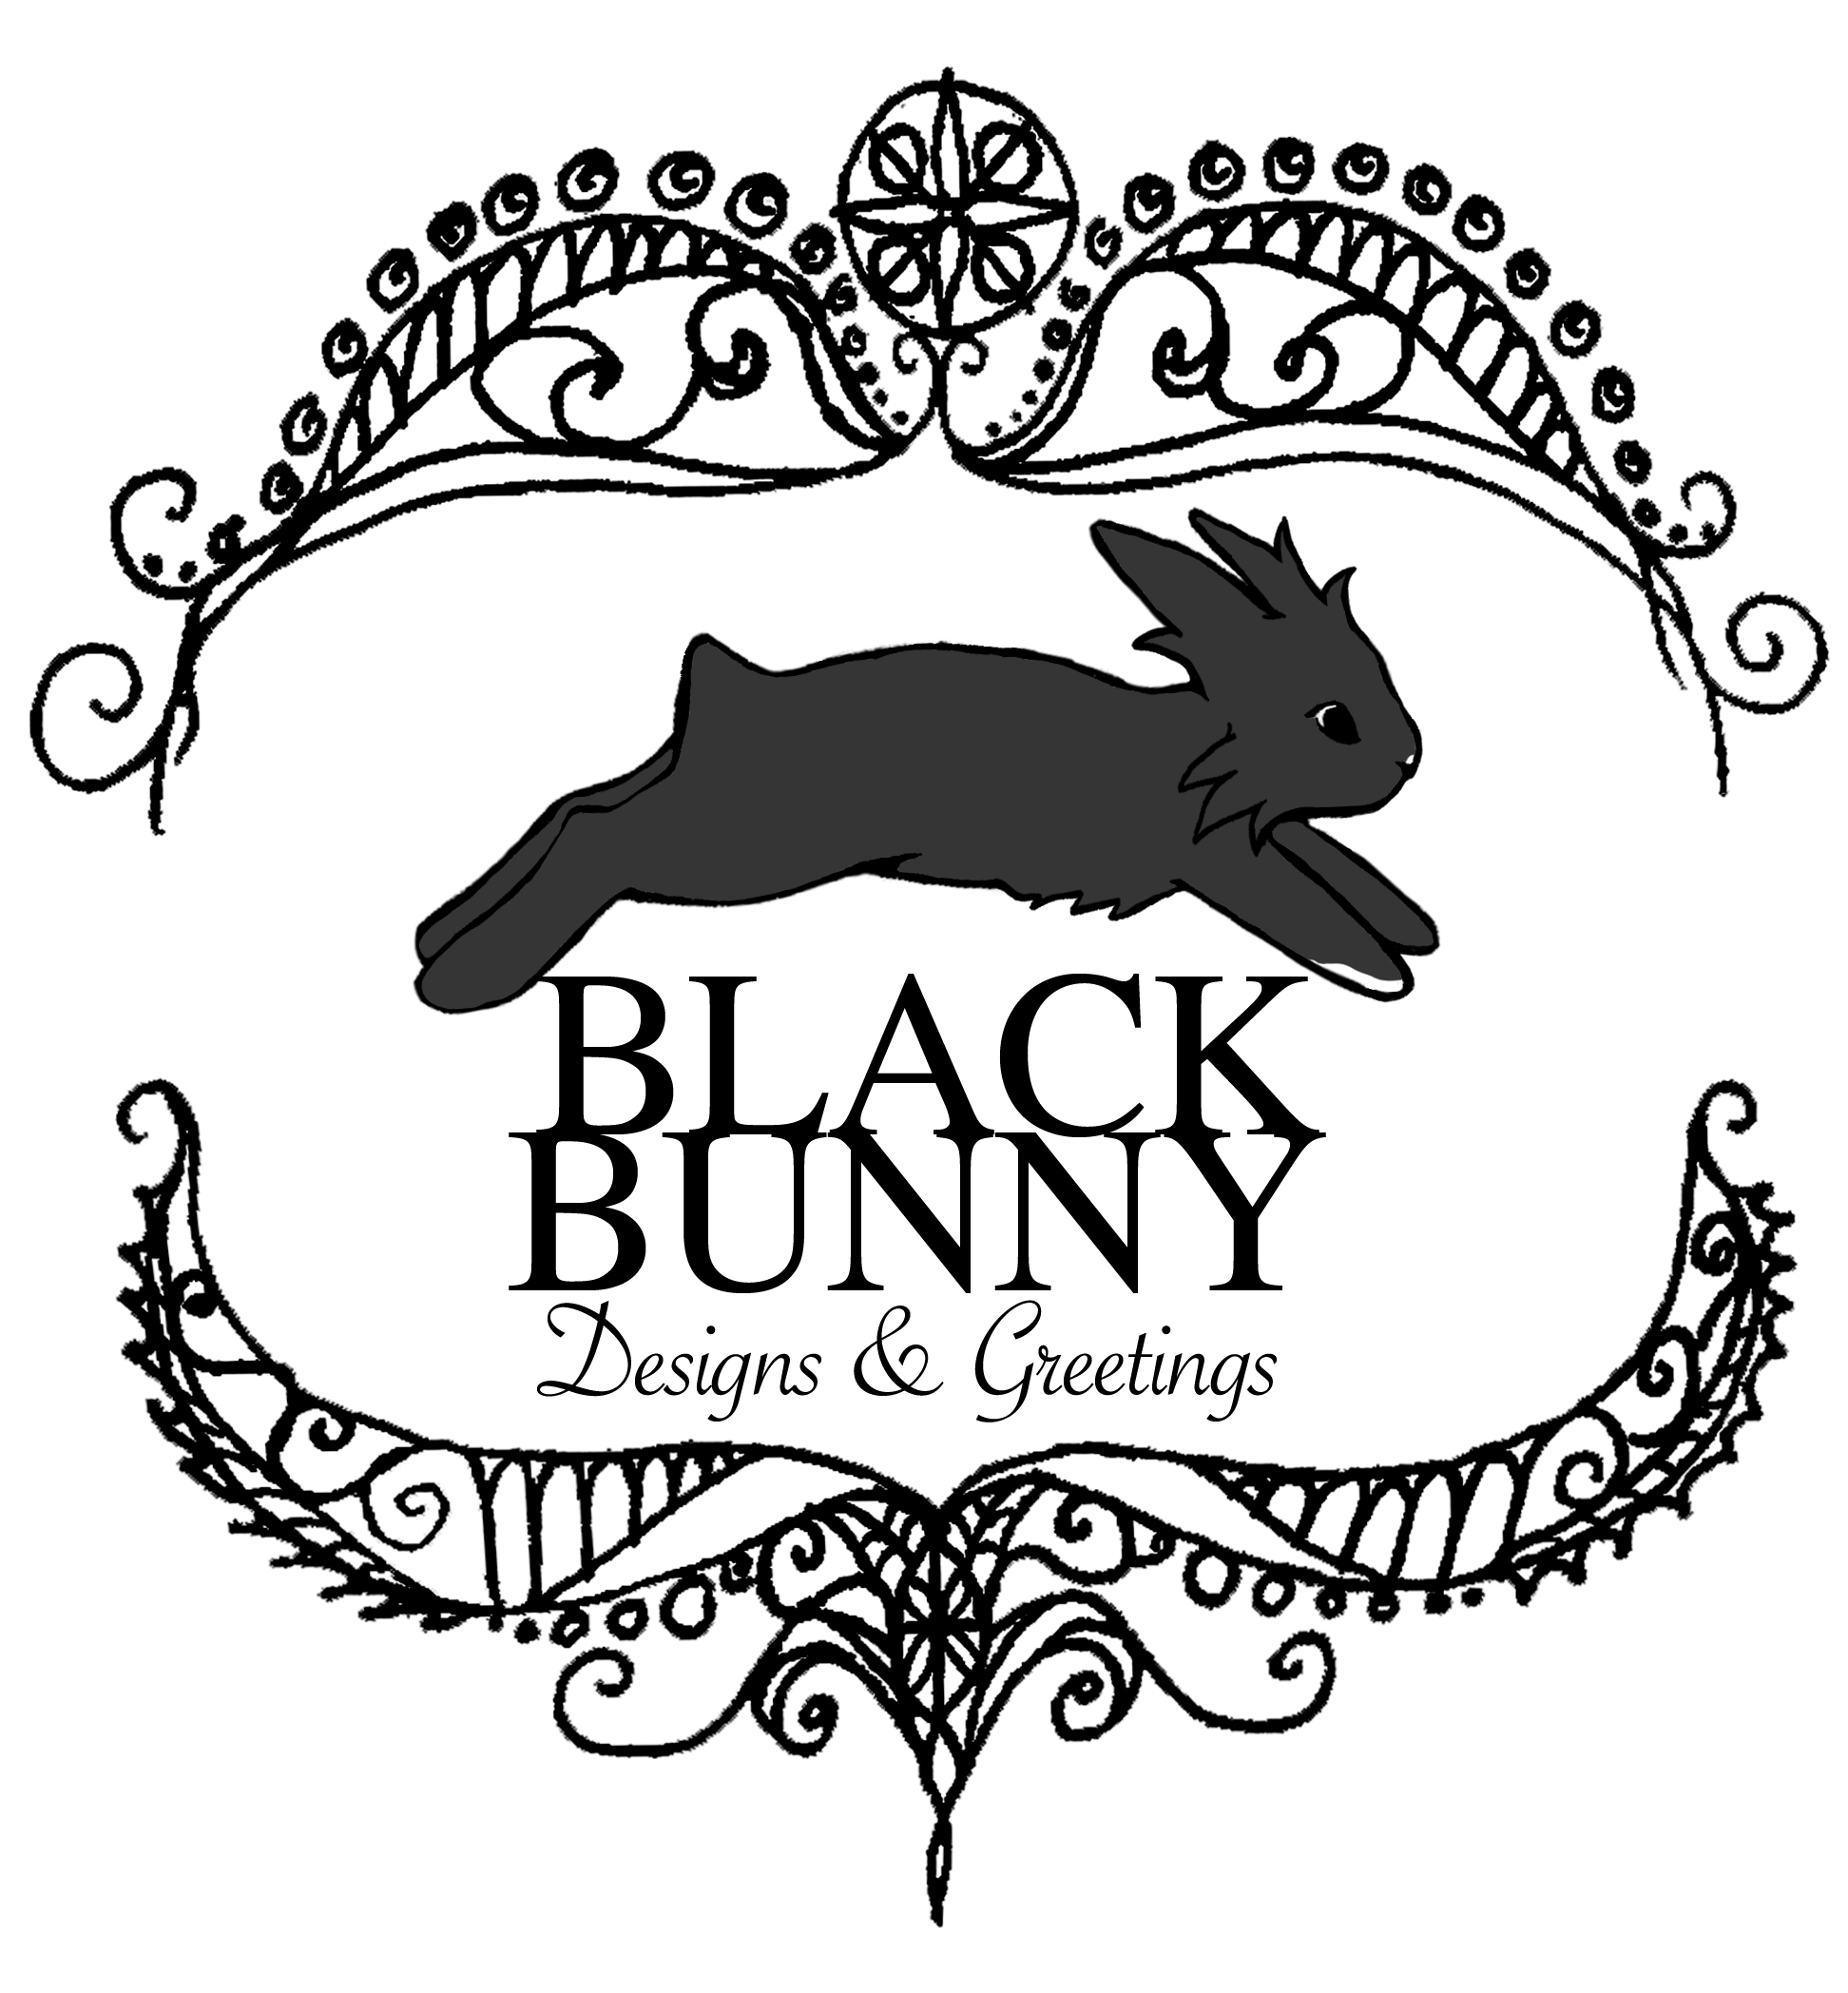 greeting cards by Black Bunny Designs and Greetings